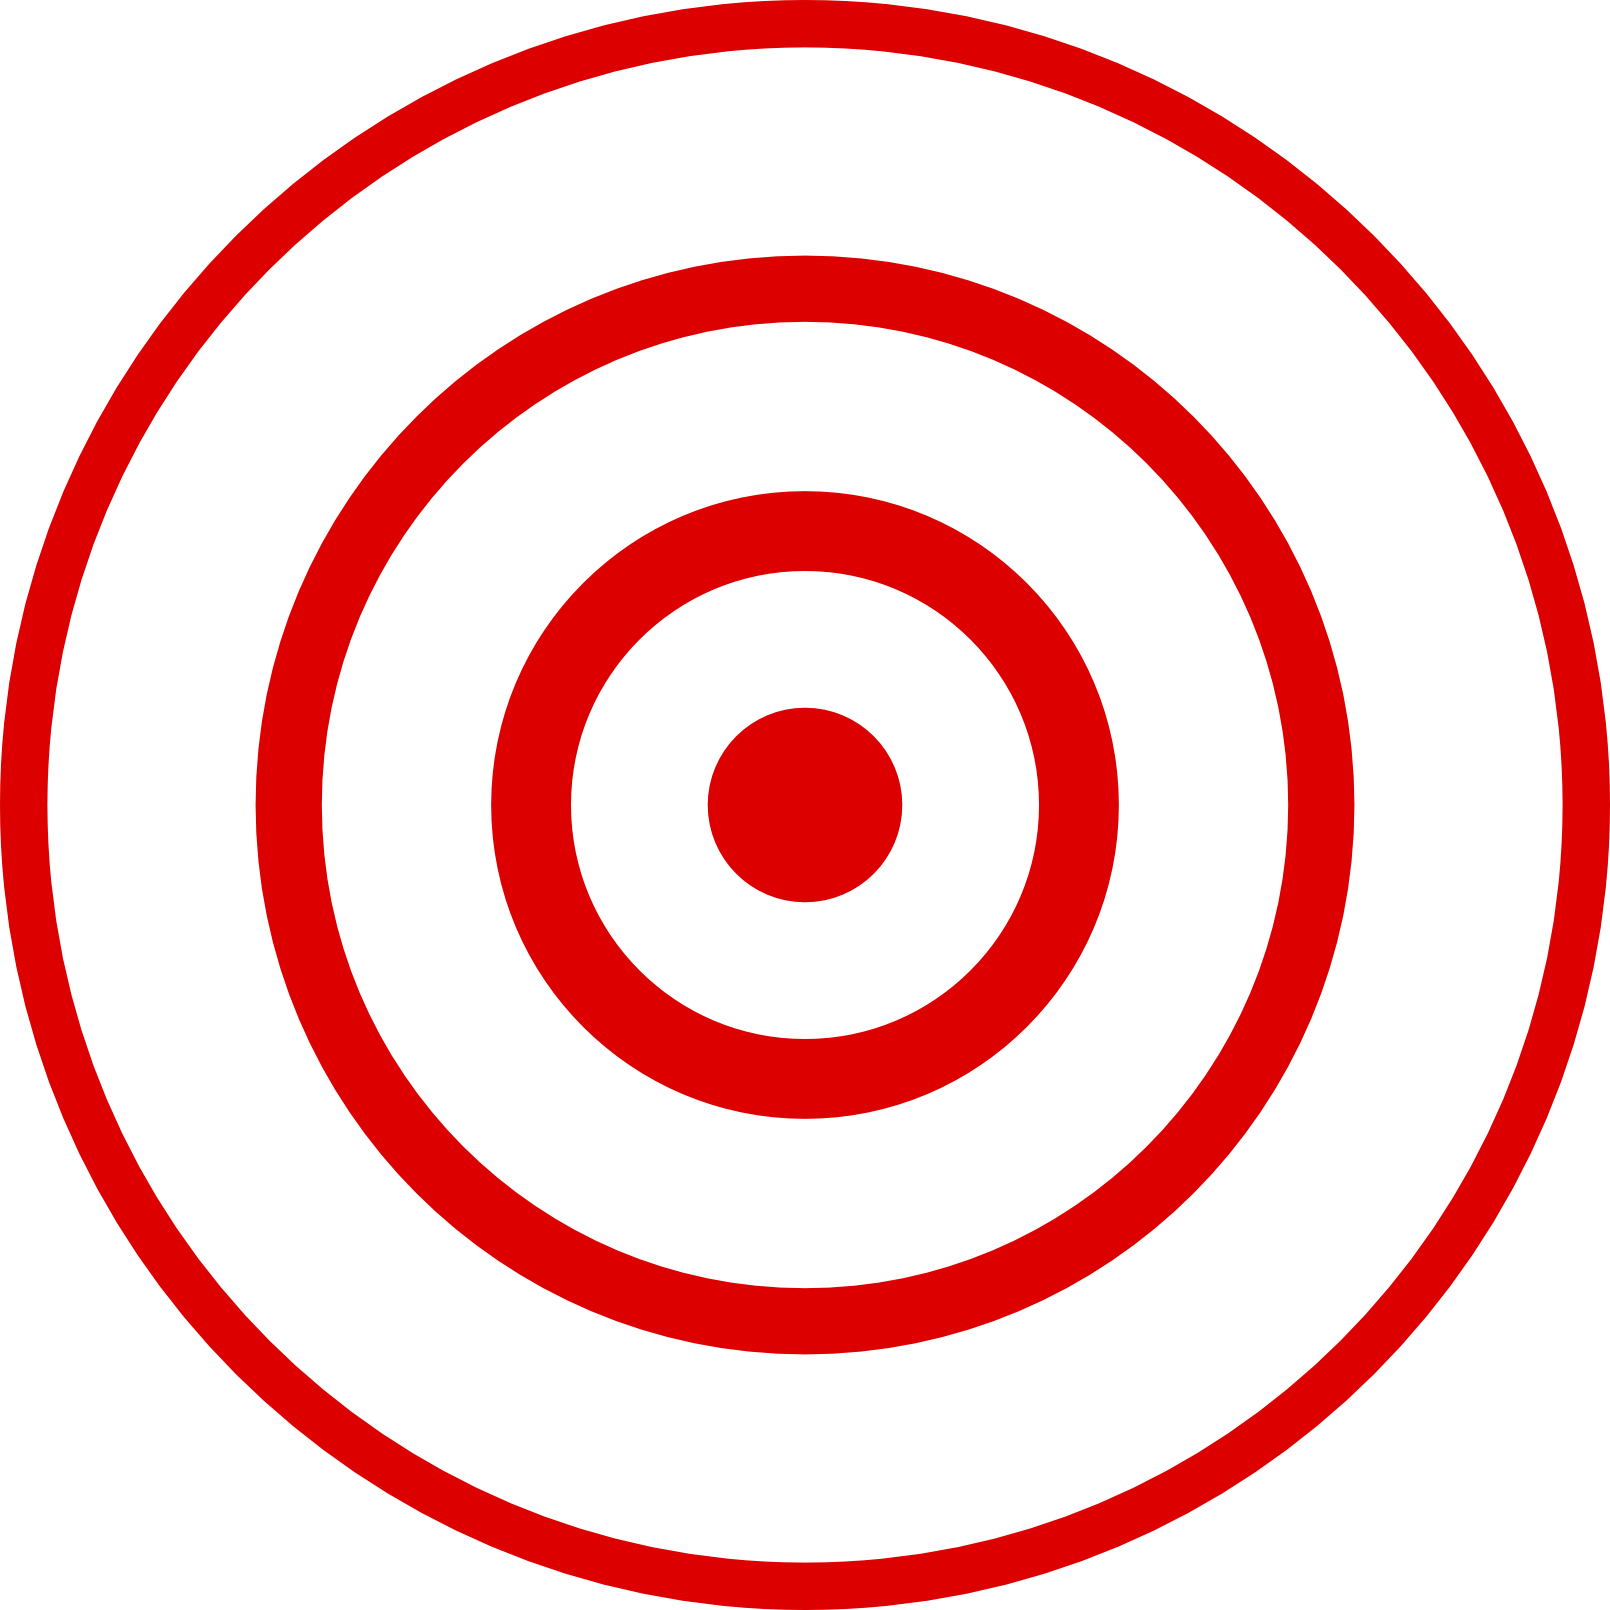 banner library stock Free images download . Bullseye clipart clip art